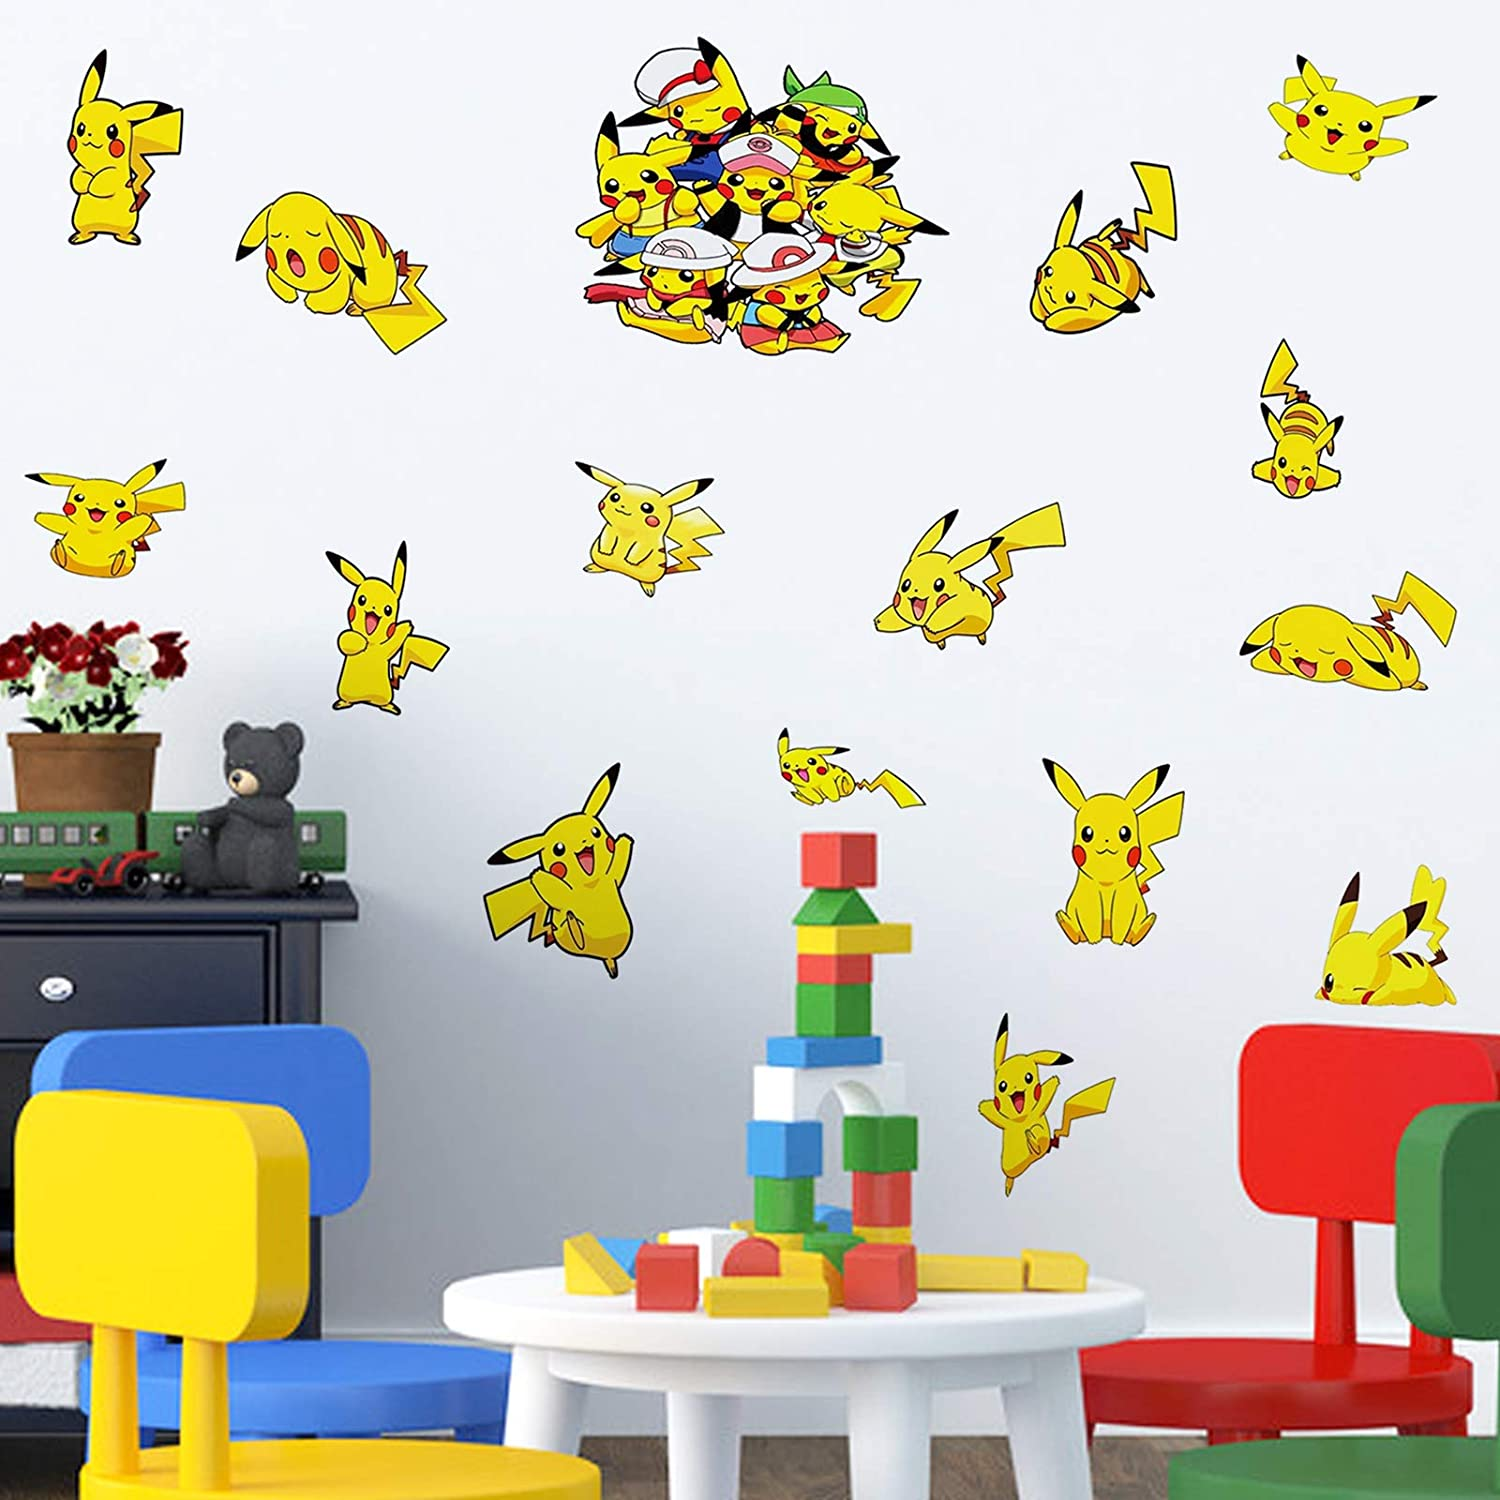 Pokemon_Wall Decals Japanese Cartoon Pikachu Stickers for Wall Pocket Cute Monsters Boys Room Decor Art 16x24 Inches